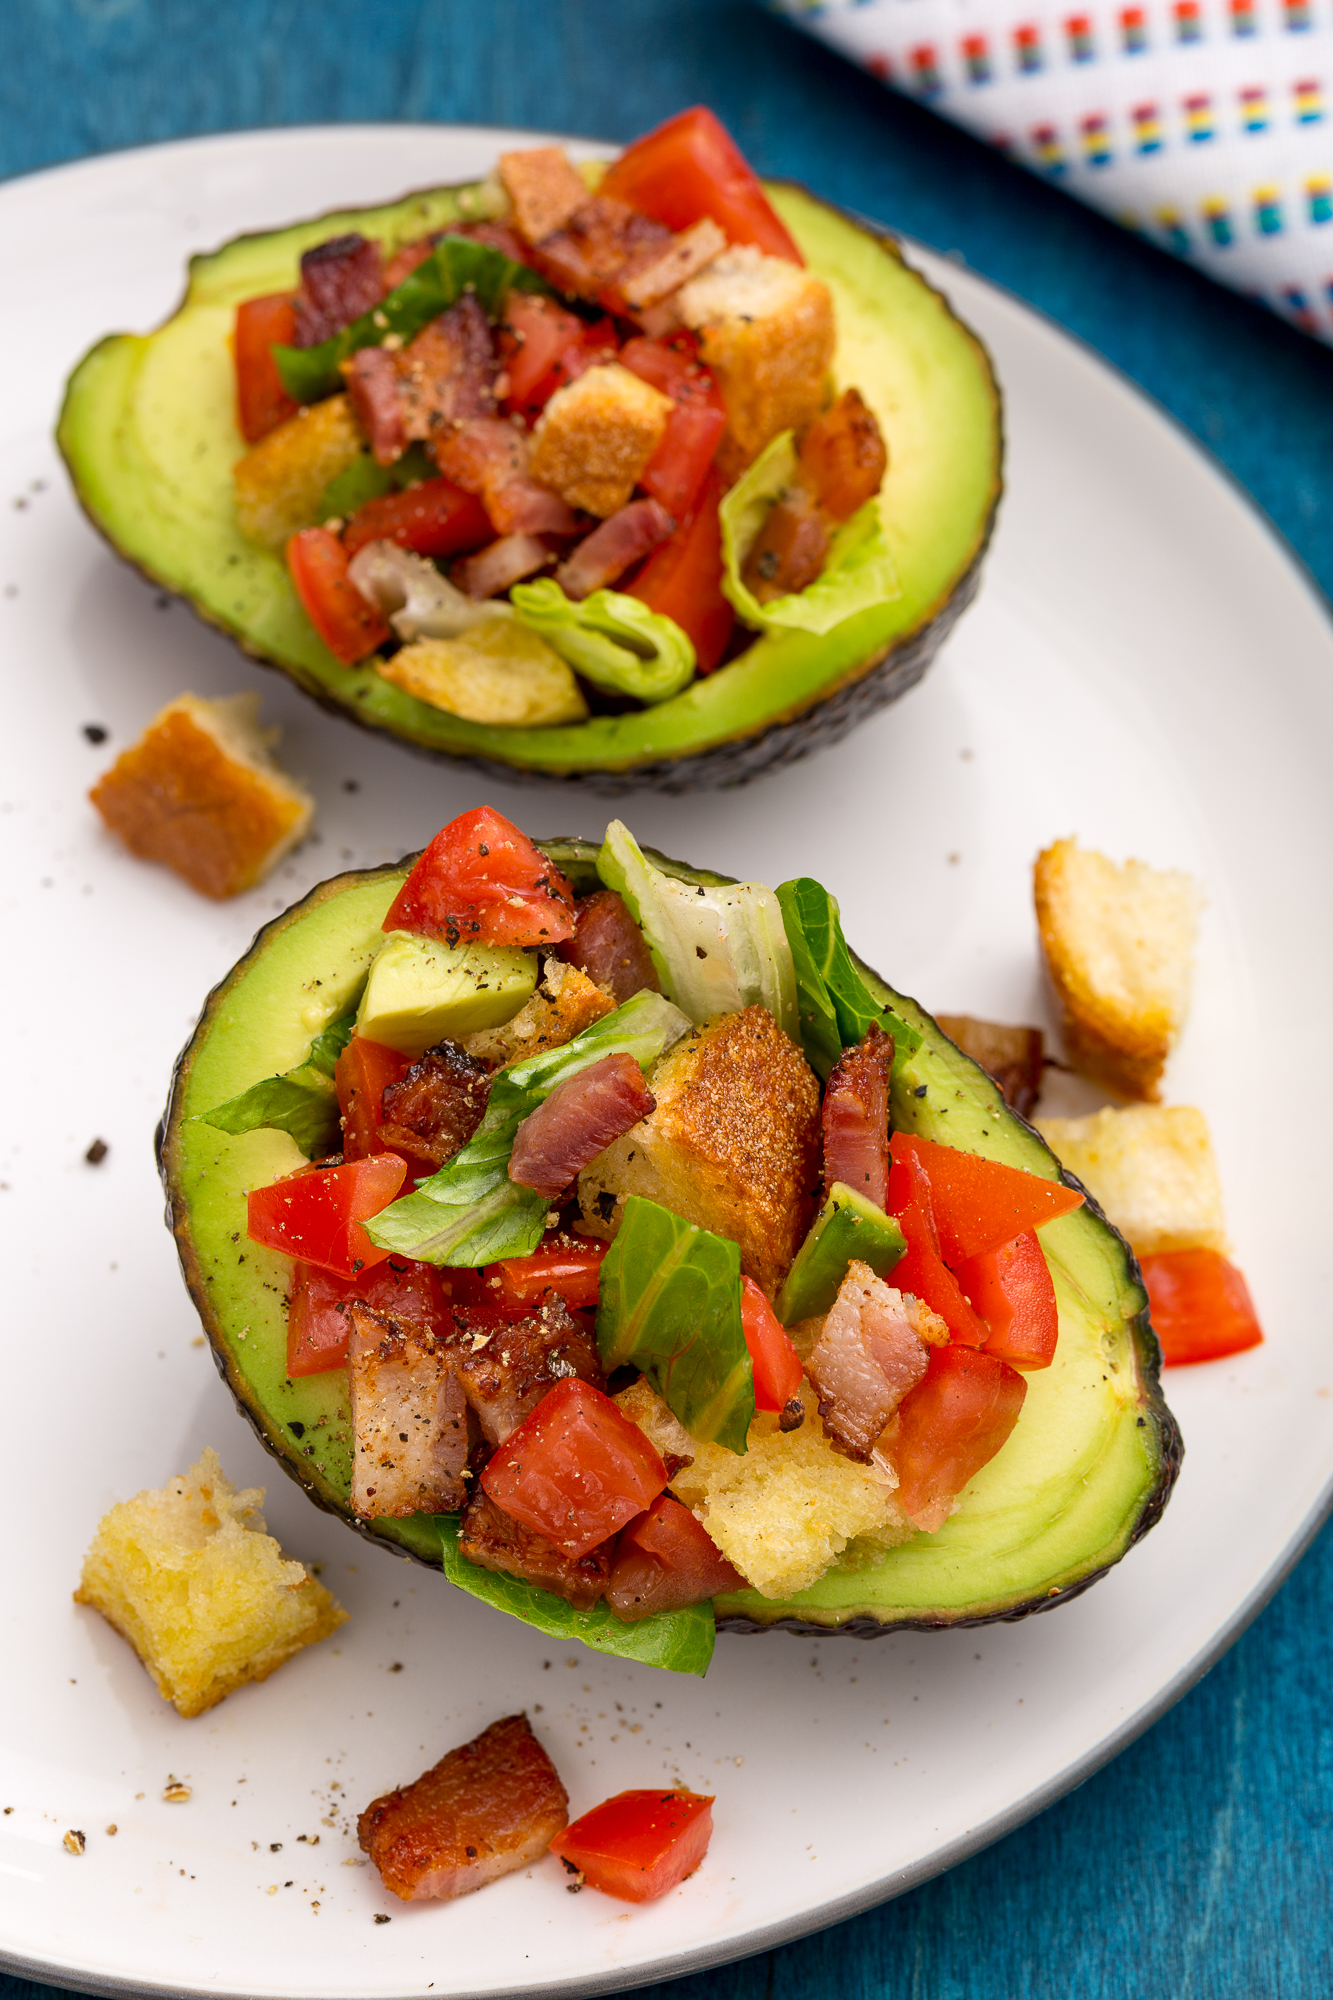 5 Easy Stuffed Avocado Recipes What To Put In A Stuffed